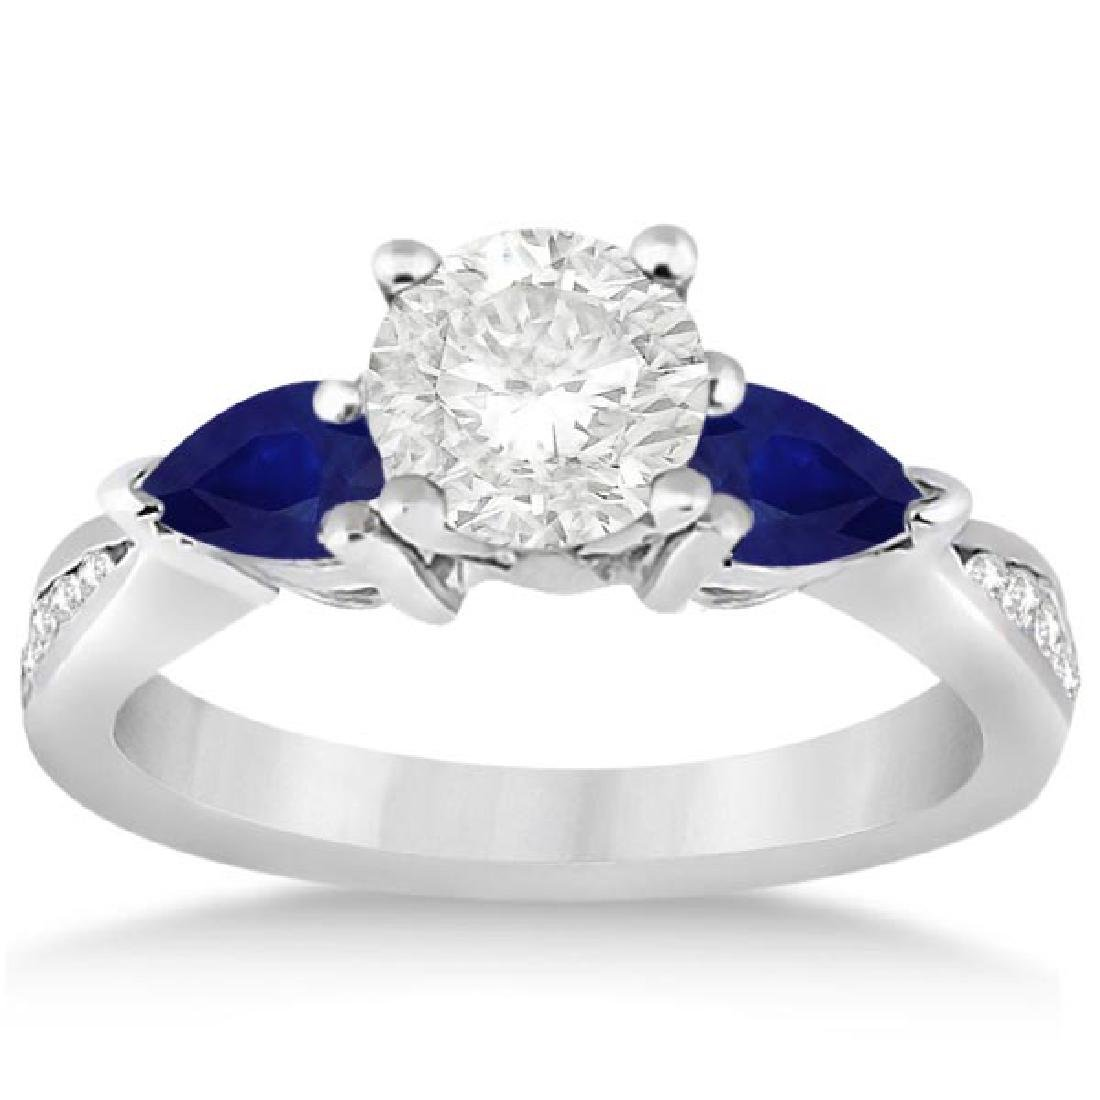 Diamond and Pear Blue Sapphire Engagement Ring Platinum